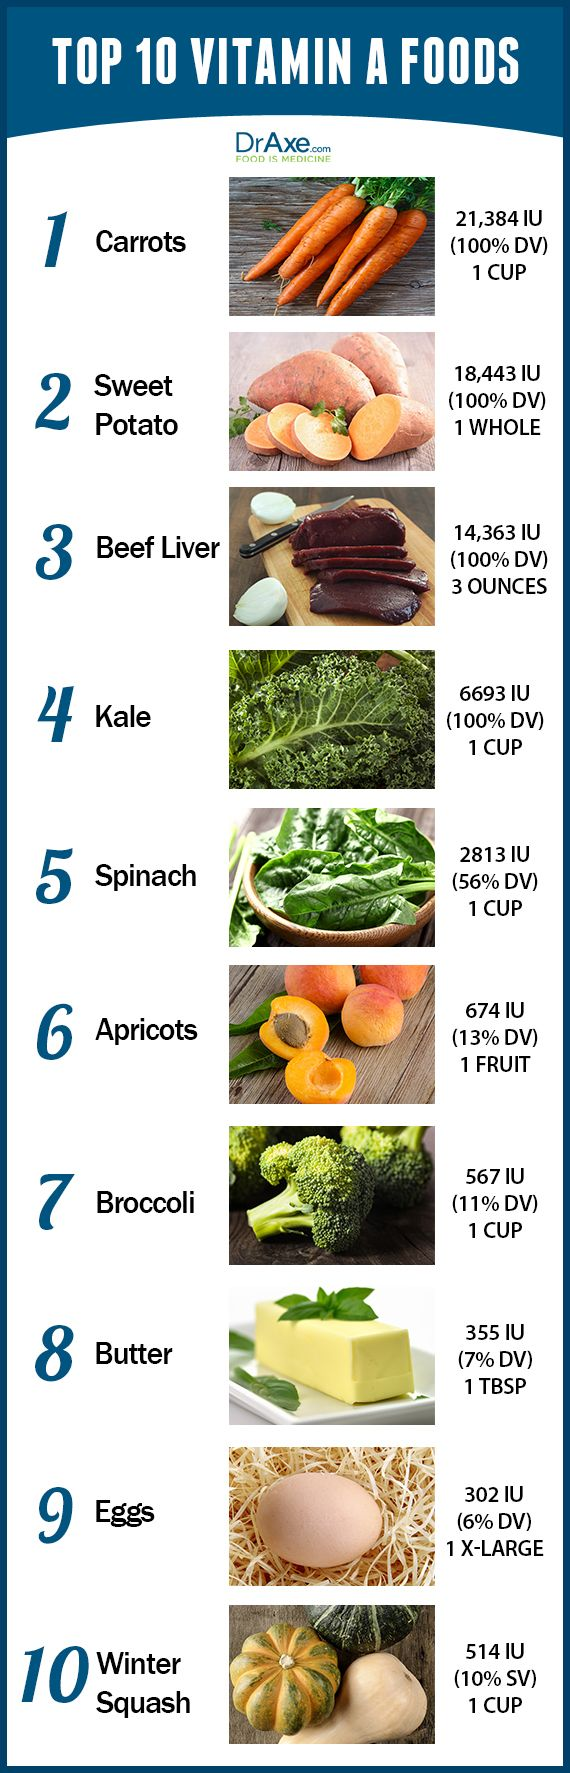 Vitamin A is a fat soluble vitamin that has a critical role in maintaining healthy eyes and skin. Find out the Top 10 Vitamin A Foods to eat!